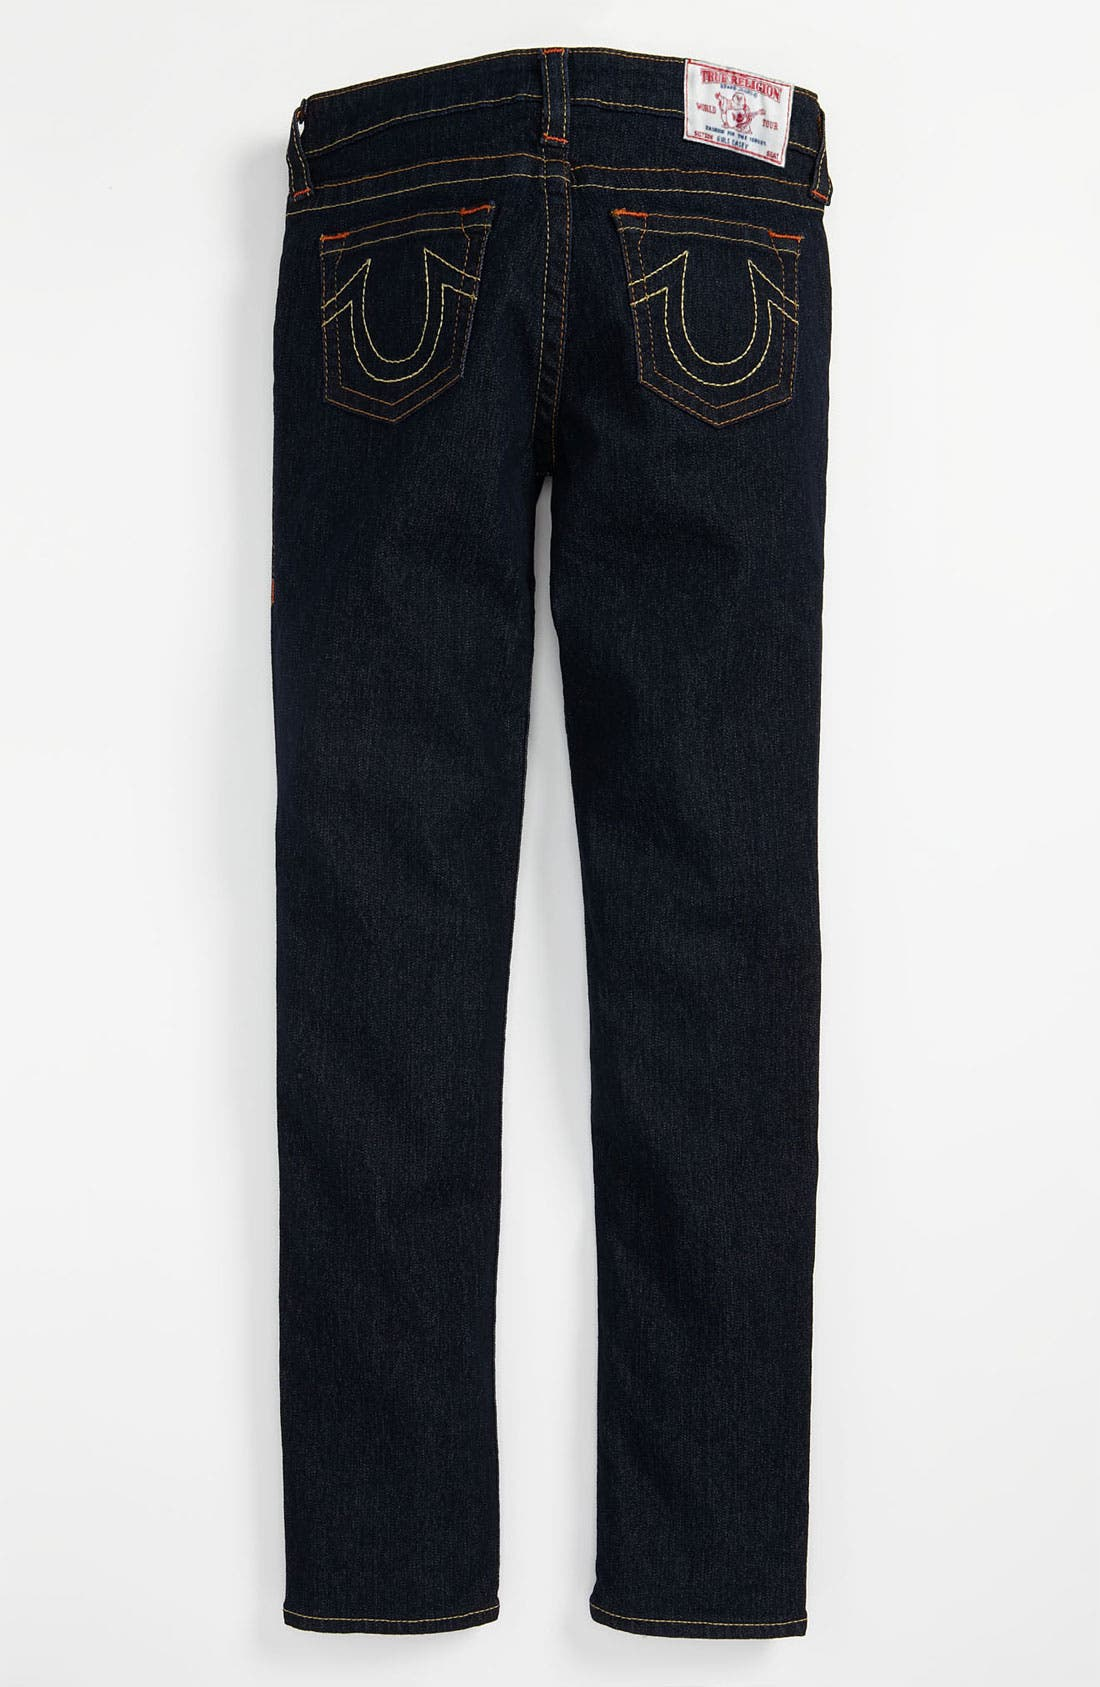 Main Image - True Religion Brand Jeans 'Casey' Denim Leggings (Big Girls)